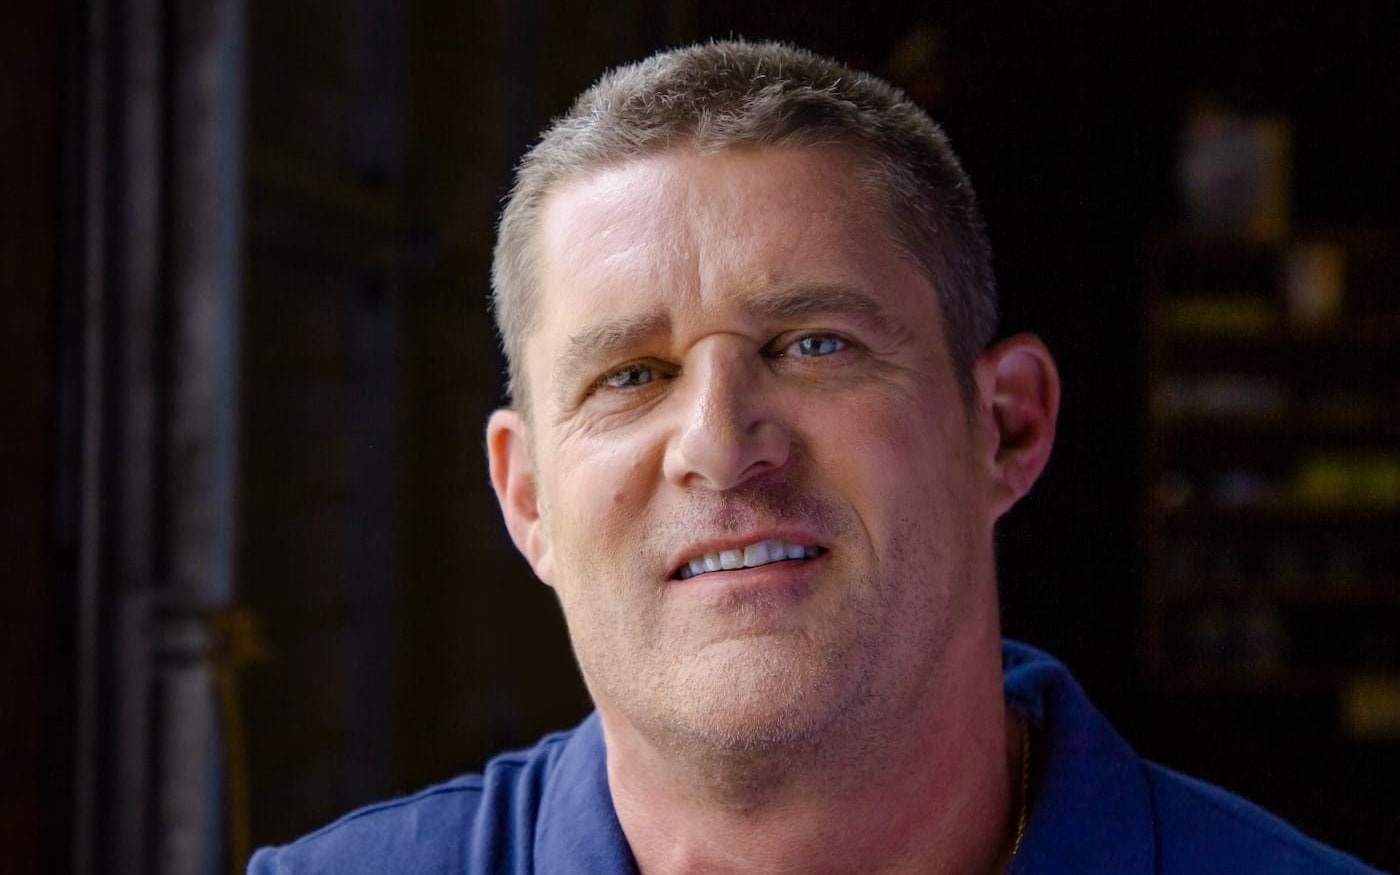 Novo projeto de PUBG - Glen Schofield de Call of Duty é o CEO do estúdio